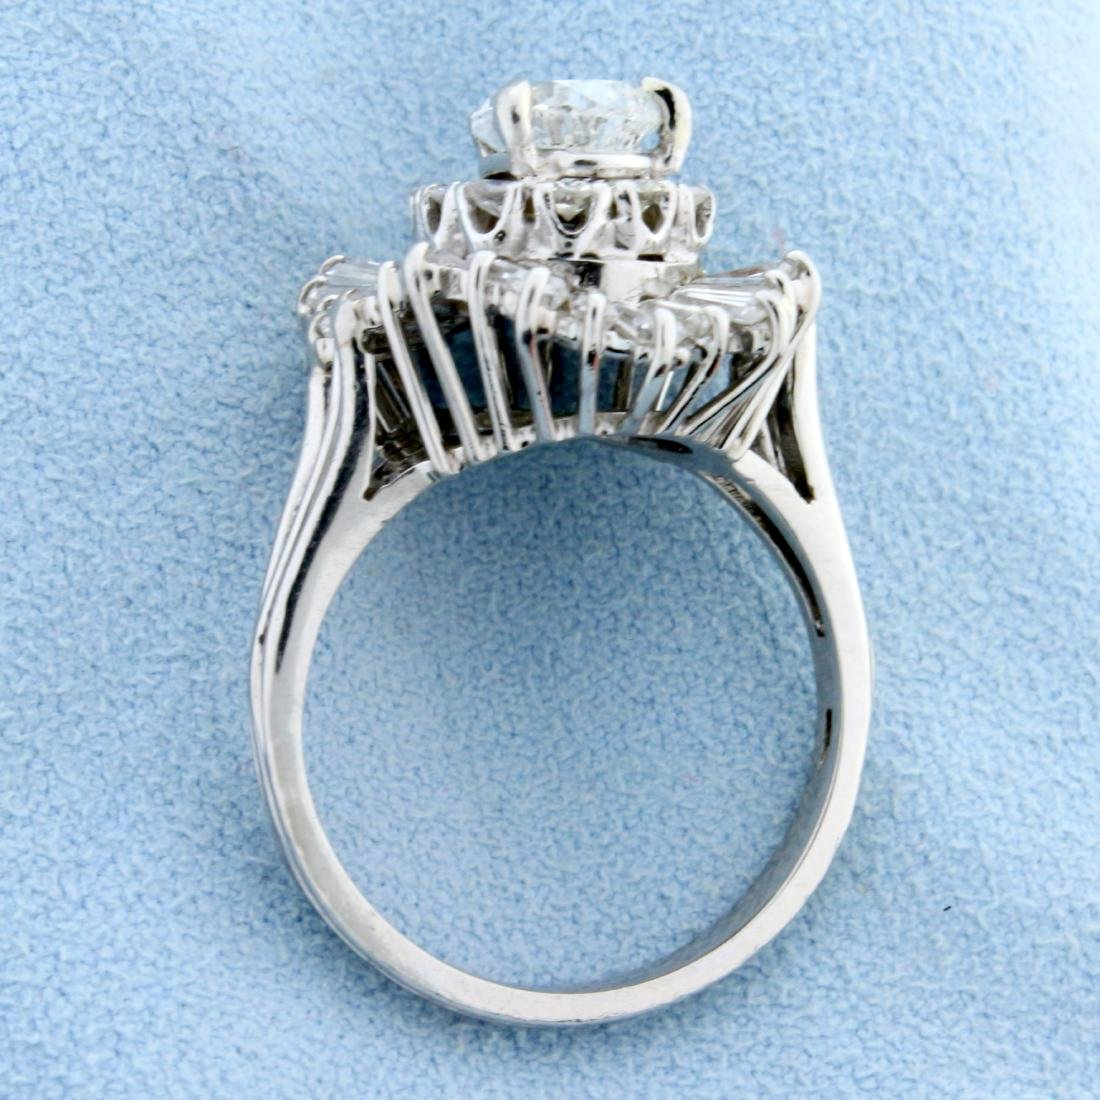 Vintage 3 1/2ct TW Pear Diamond Engagement Ring in - 3